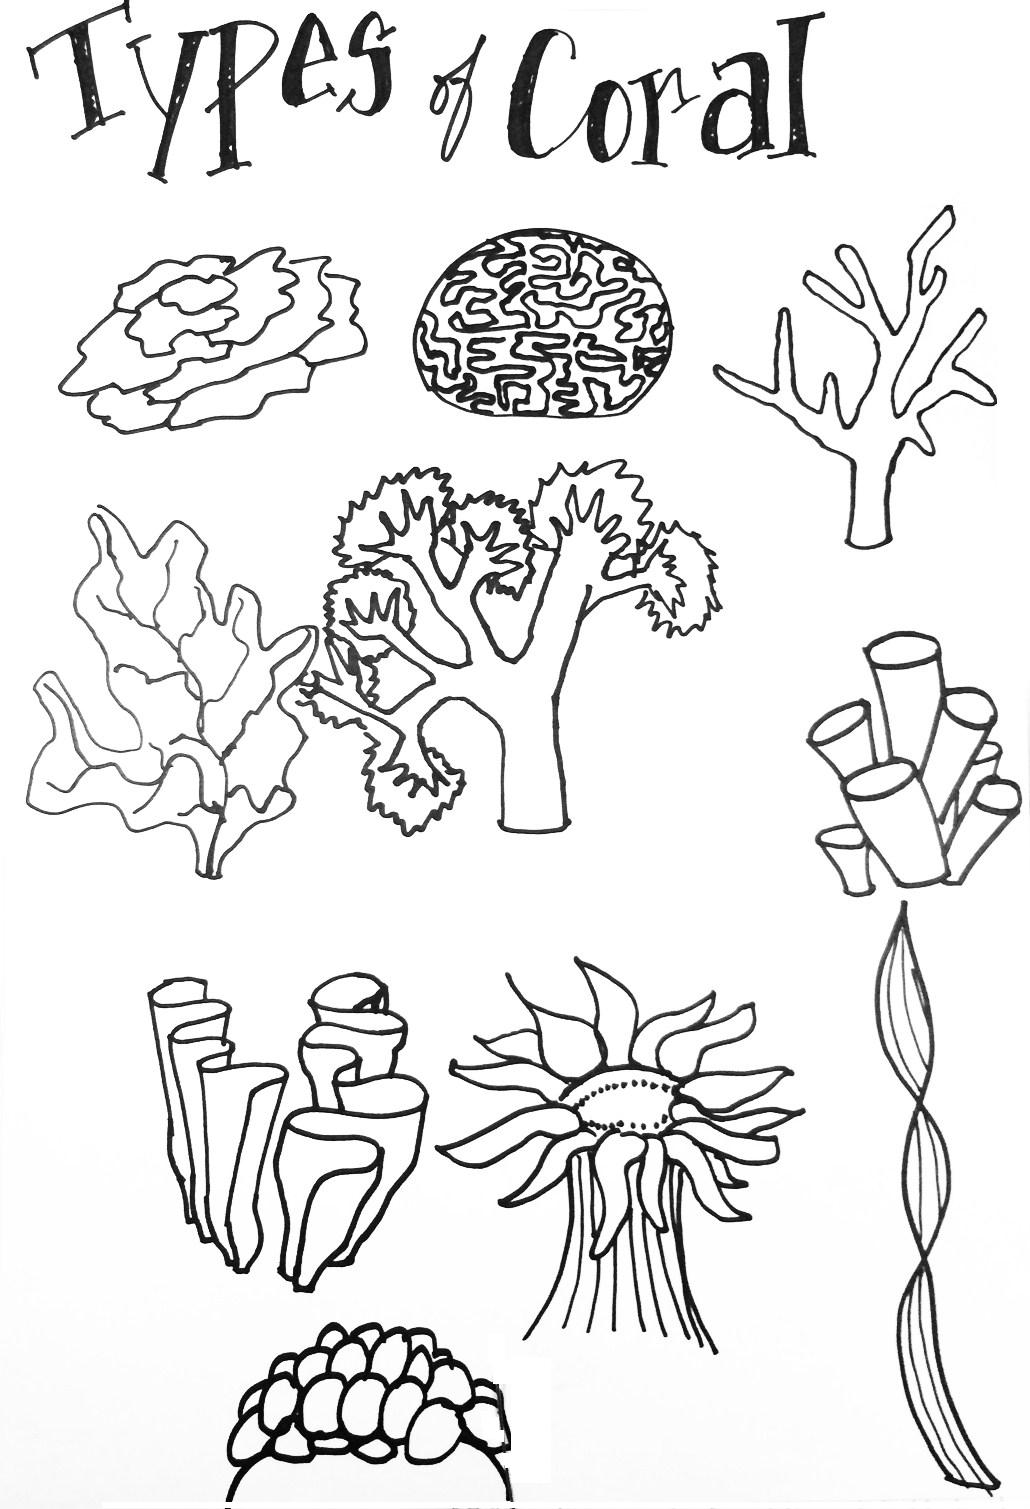 three types of rocks coloring pages | Types of coral - Create Art with ME